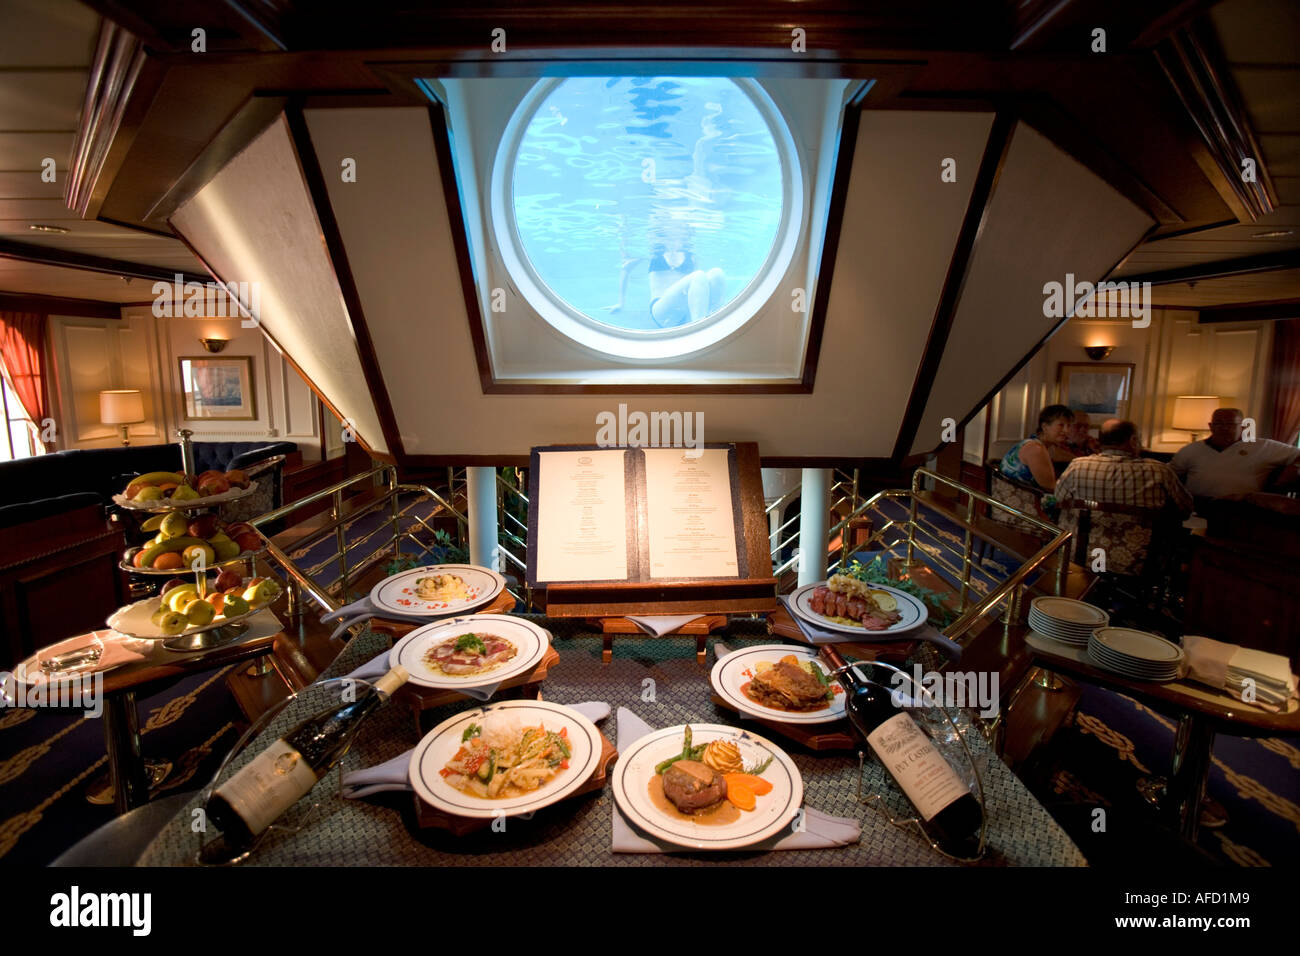 Star Flyer Atrium, Captain´s Dinner Choices, Santorini Harbor, Greece - Stock Image